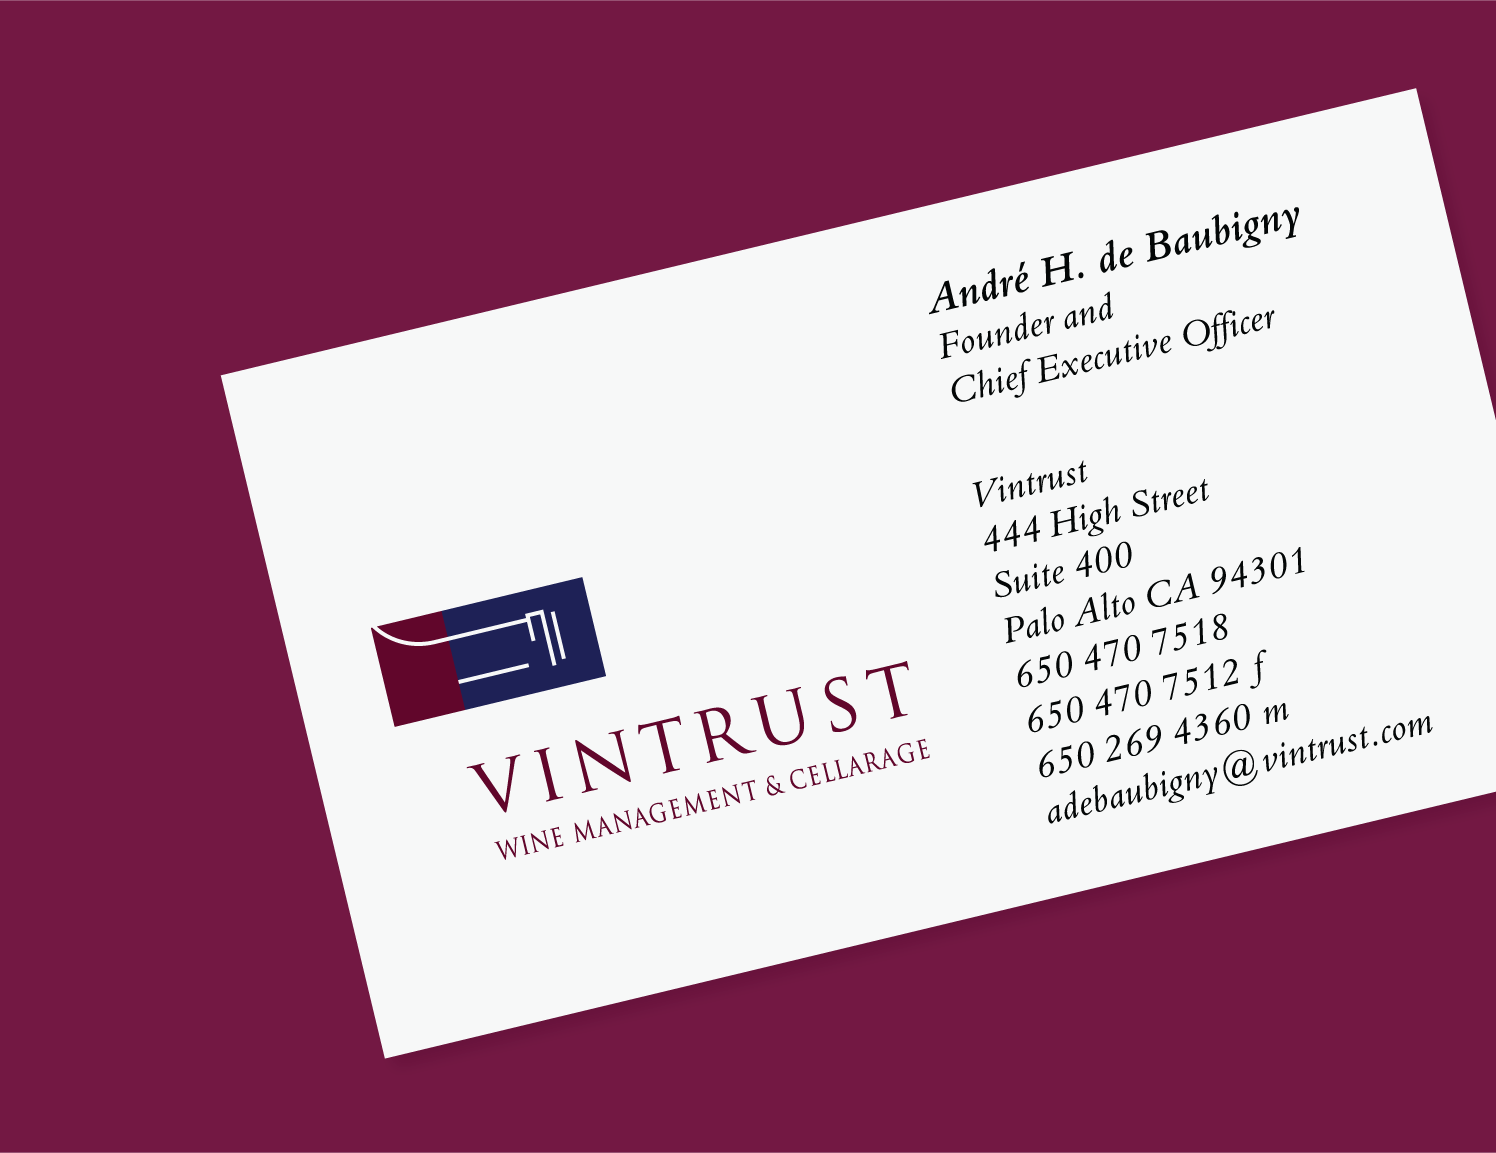 vintrust logo example